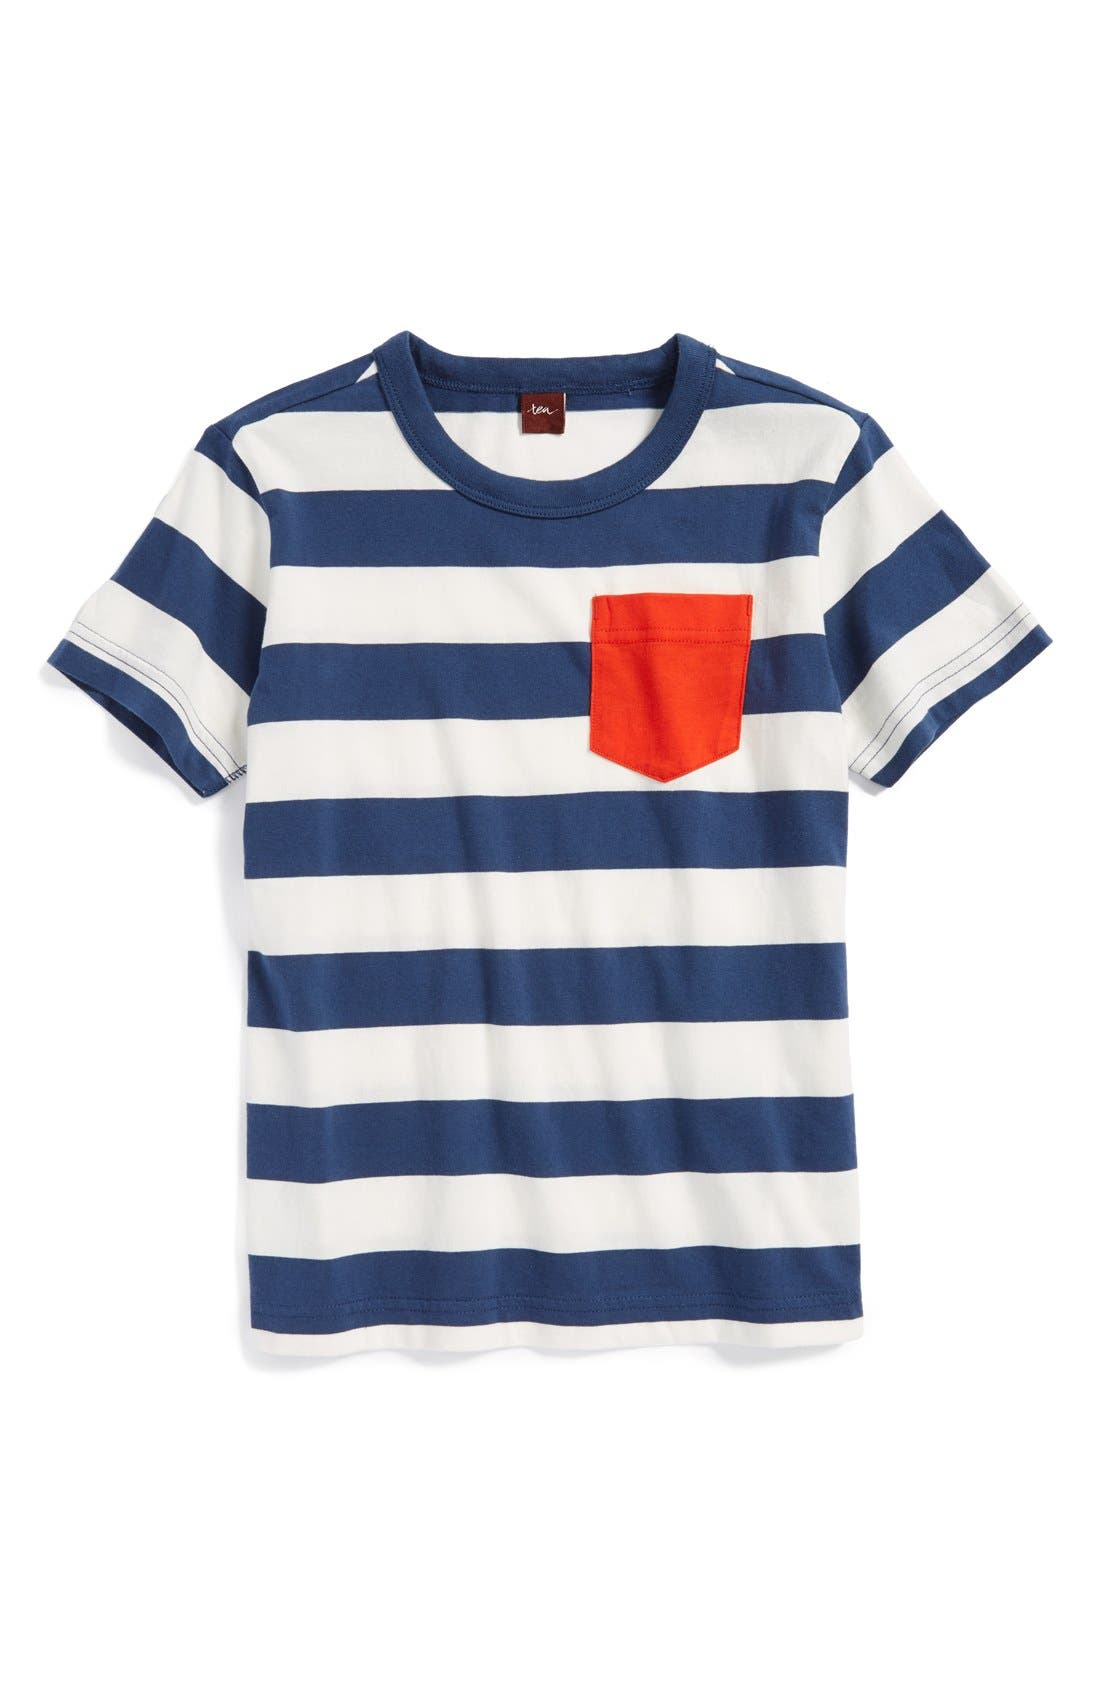 Alternate Image 1 Selected - Tea Collection 'Maritime' Stripe Cotton T-Shirt (Baby Boys)